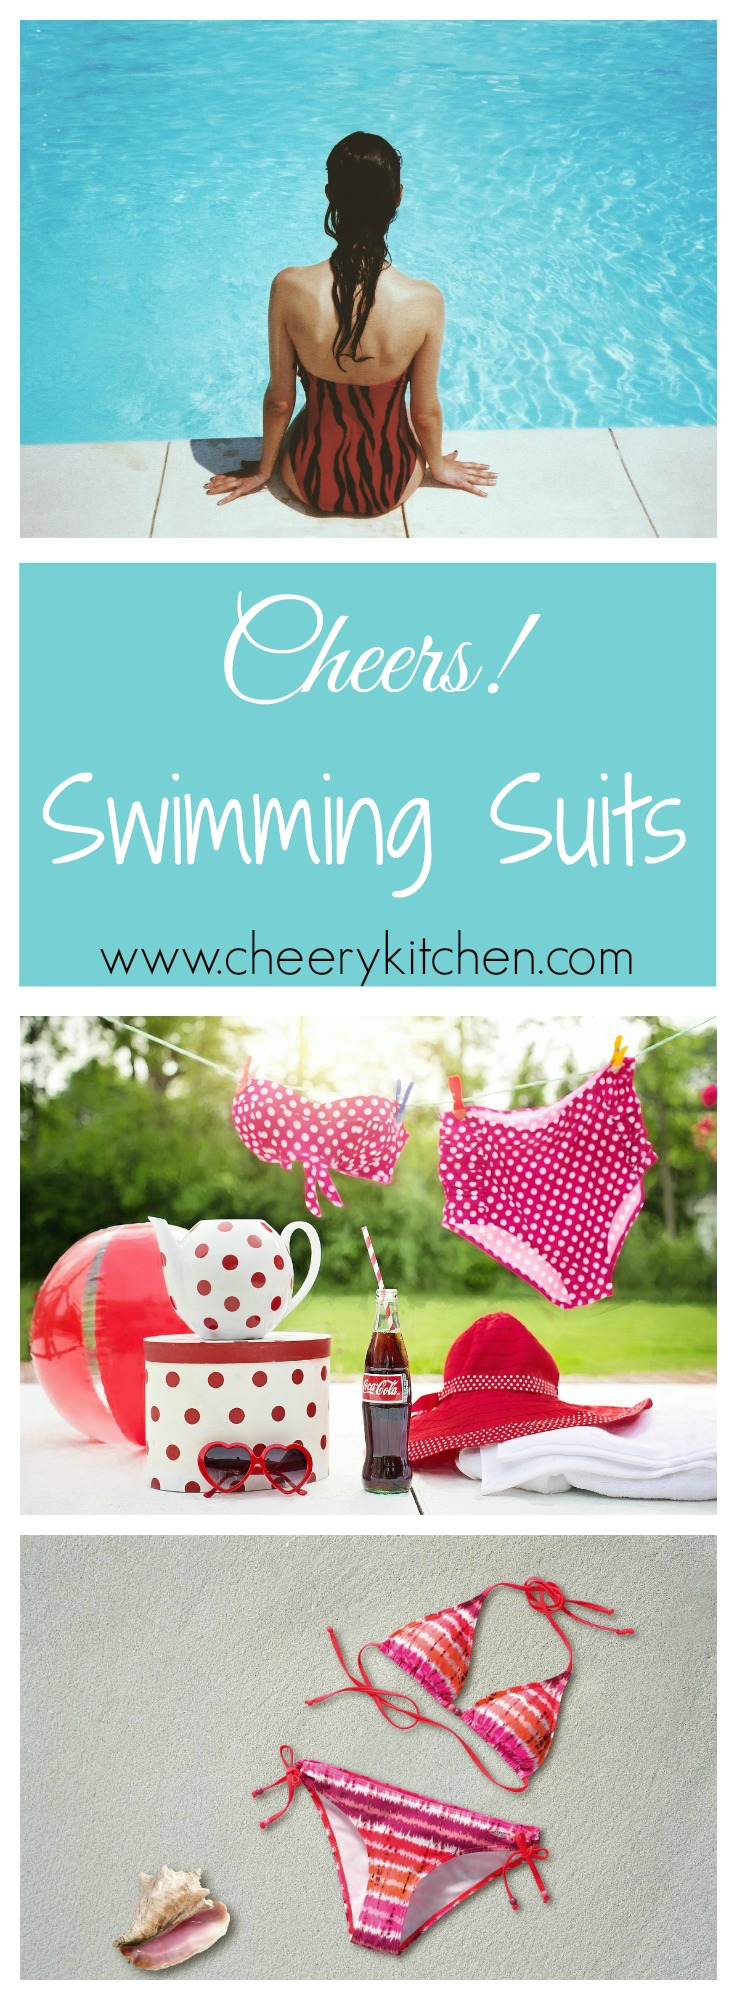 It's always hard finding swimming suits each season but these are the BEST options out on the web for the busy mom on the go!